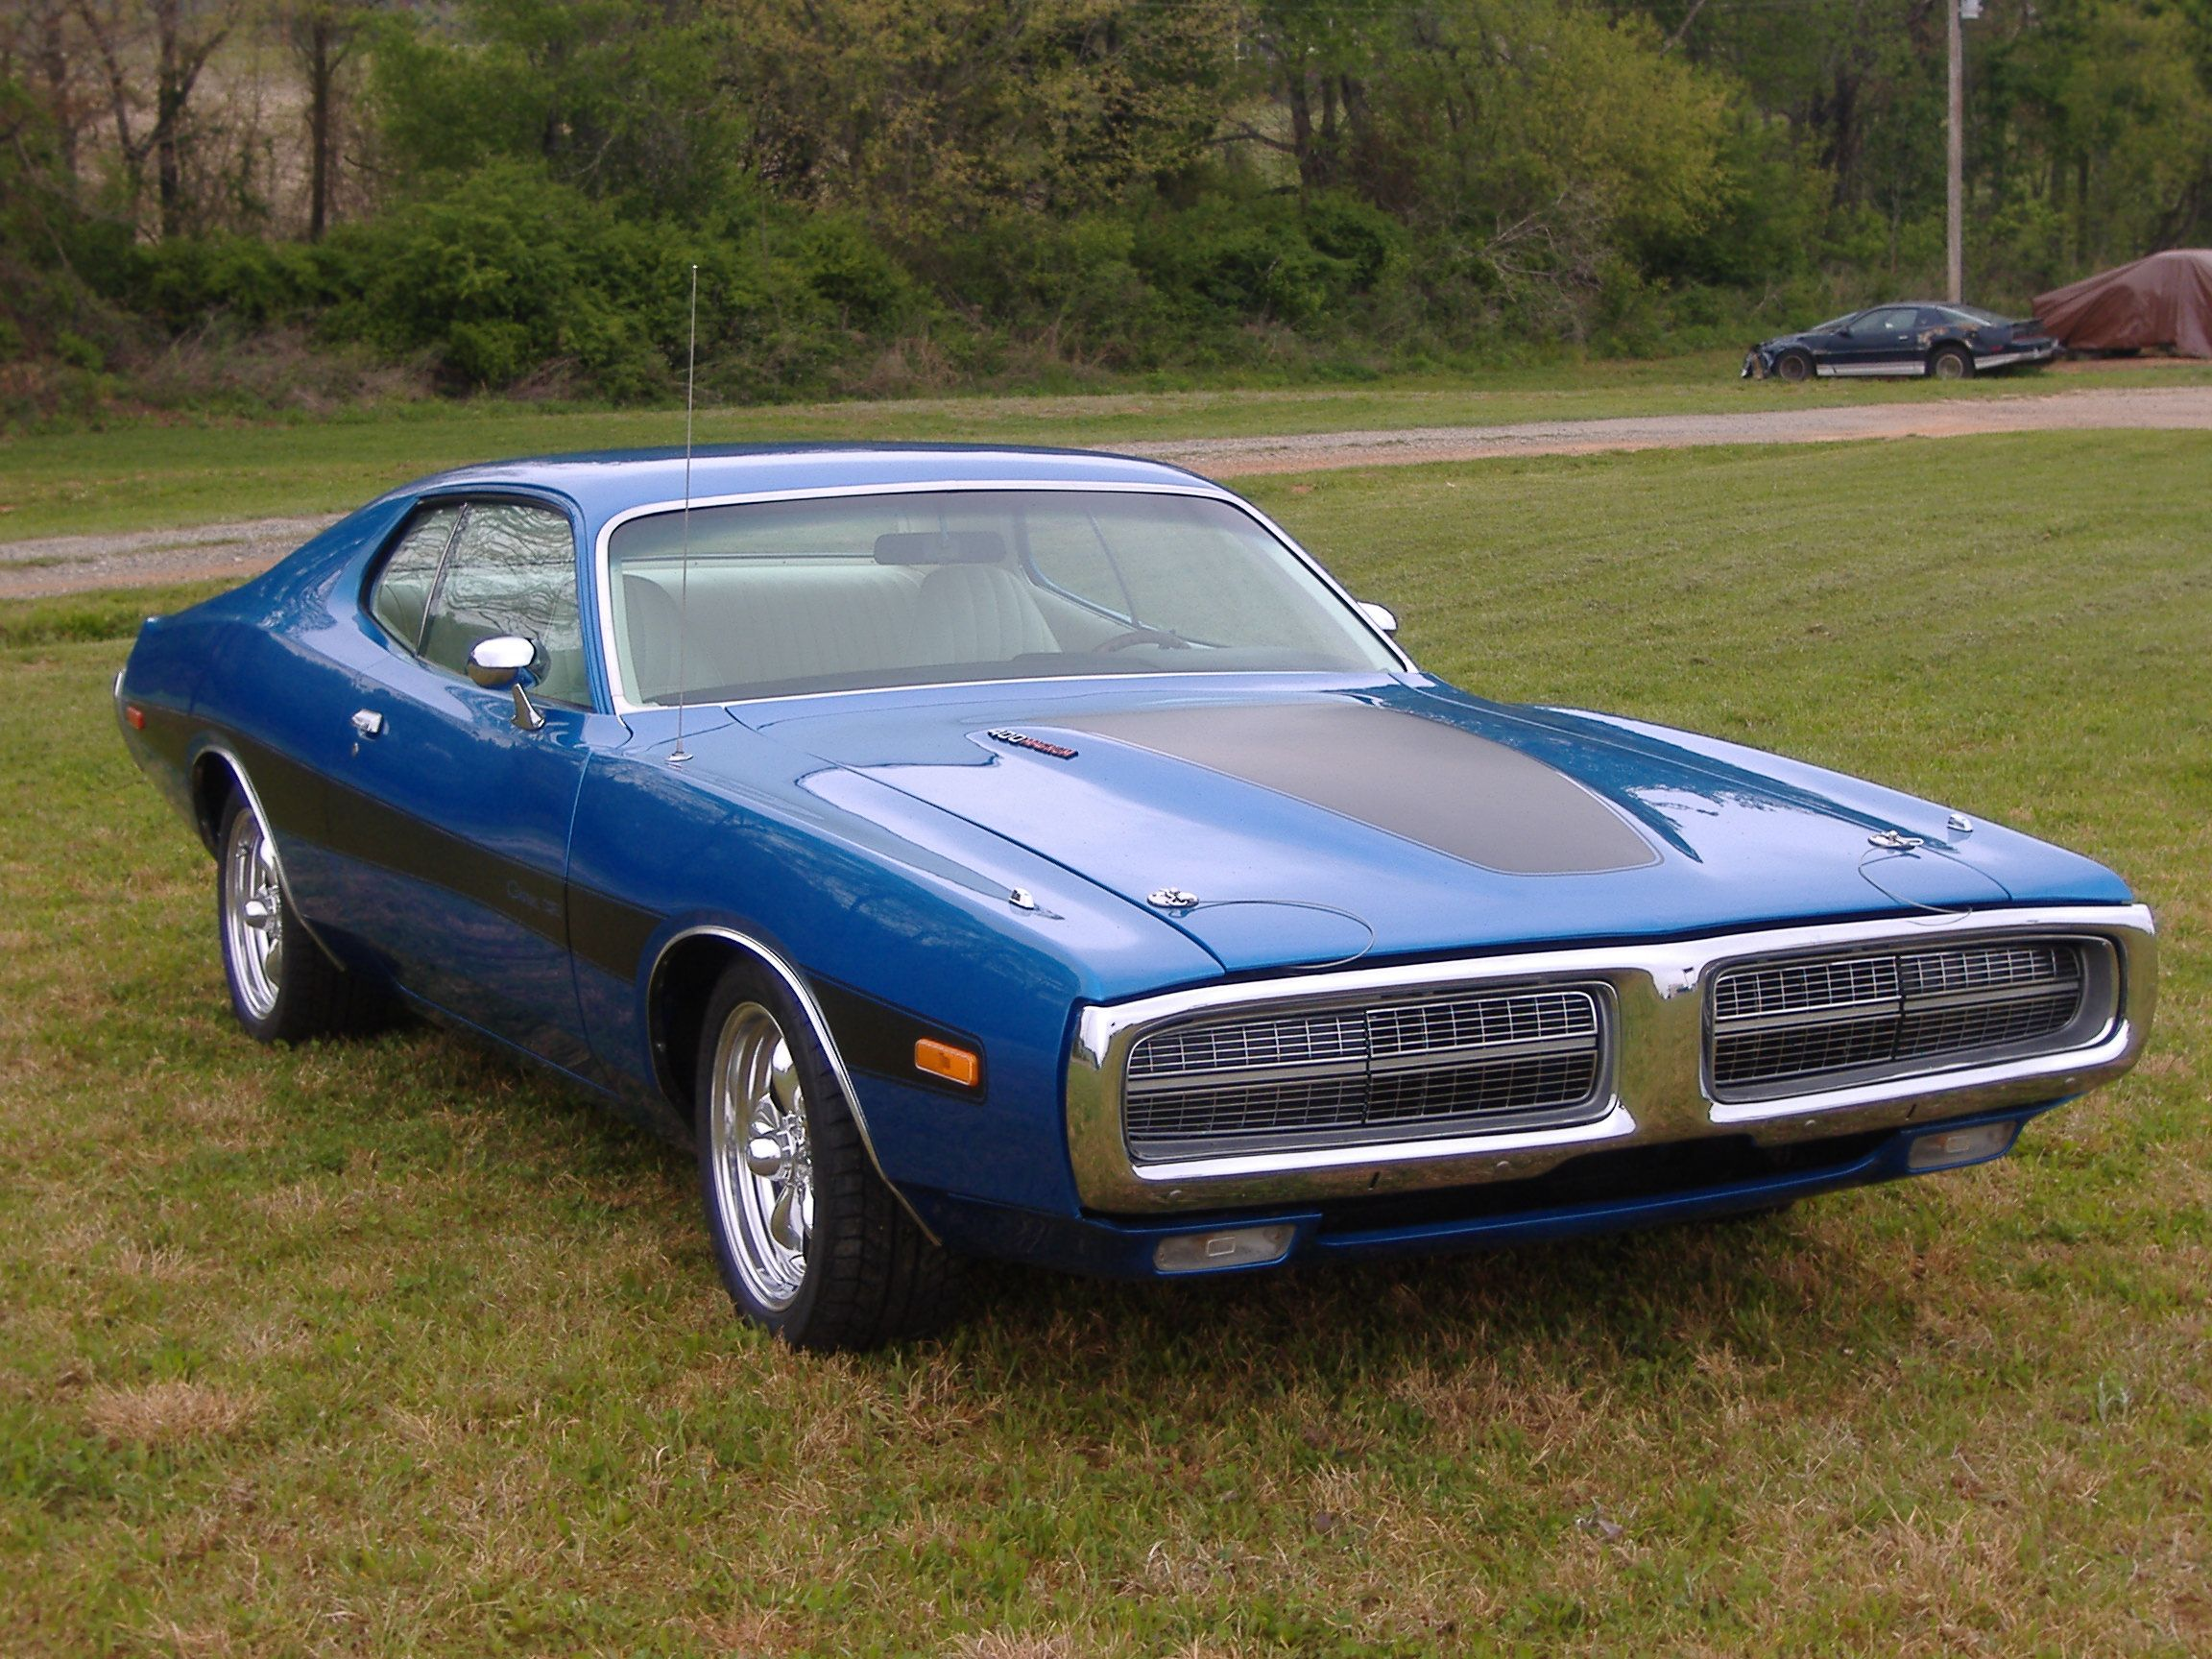 1973 Dodge Charger | 1973 Dodge Charger 2 door hardtop